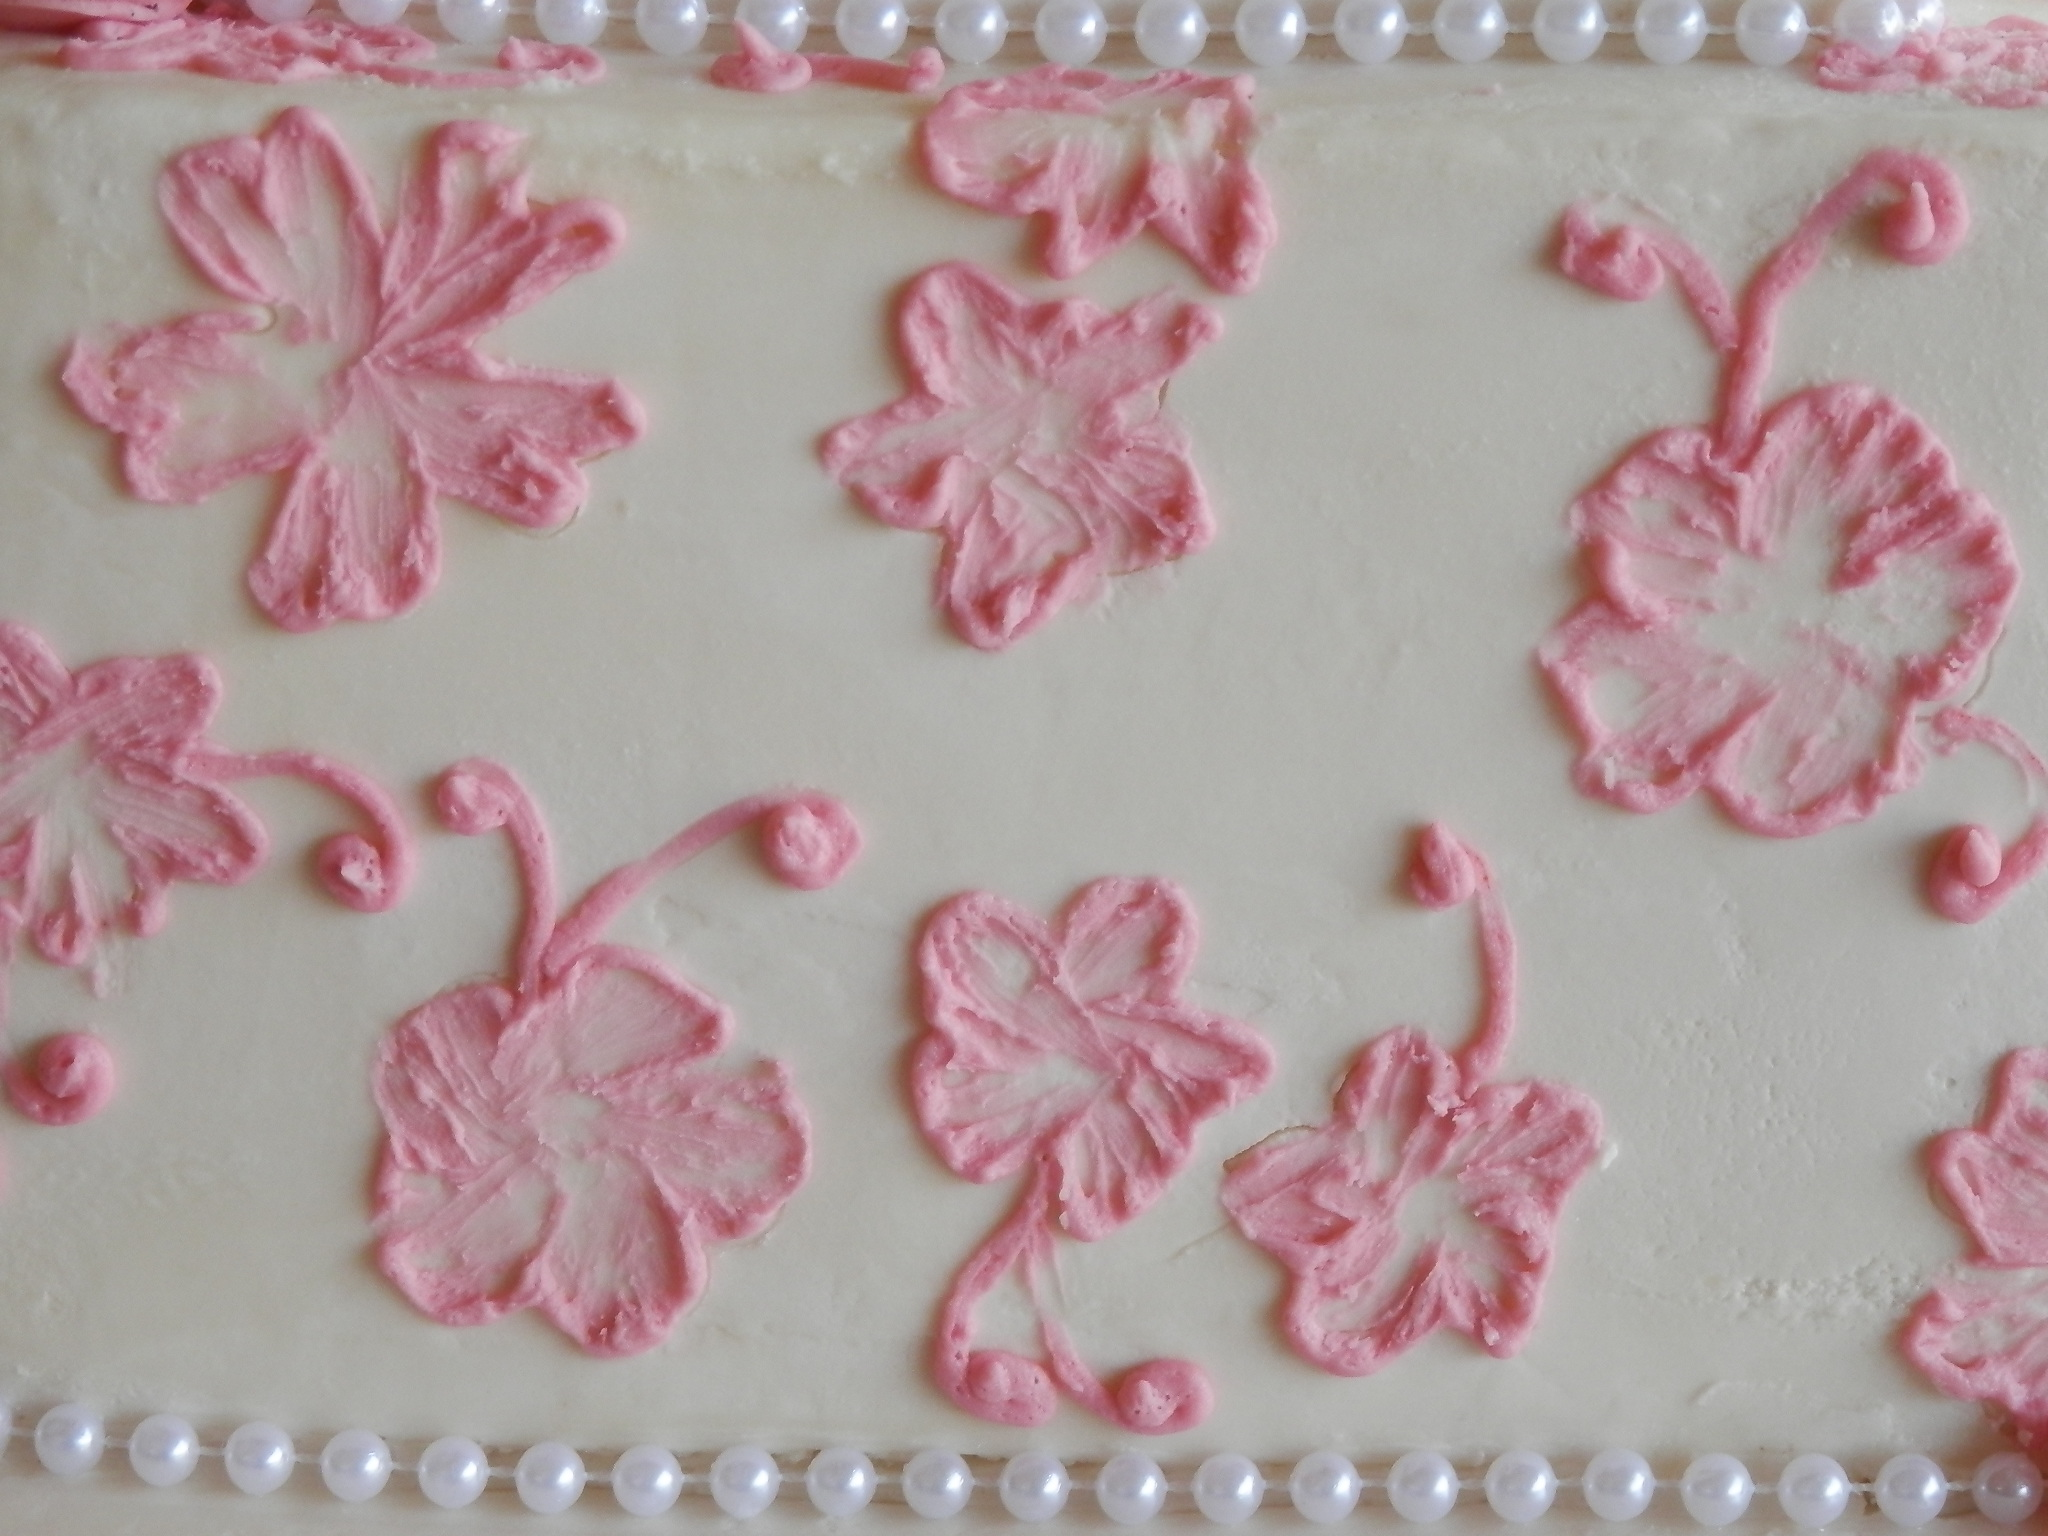 Hand Made Butter Cream Floral Scroll Design on the Square Butter Cream Cake